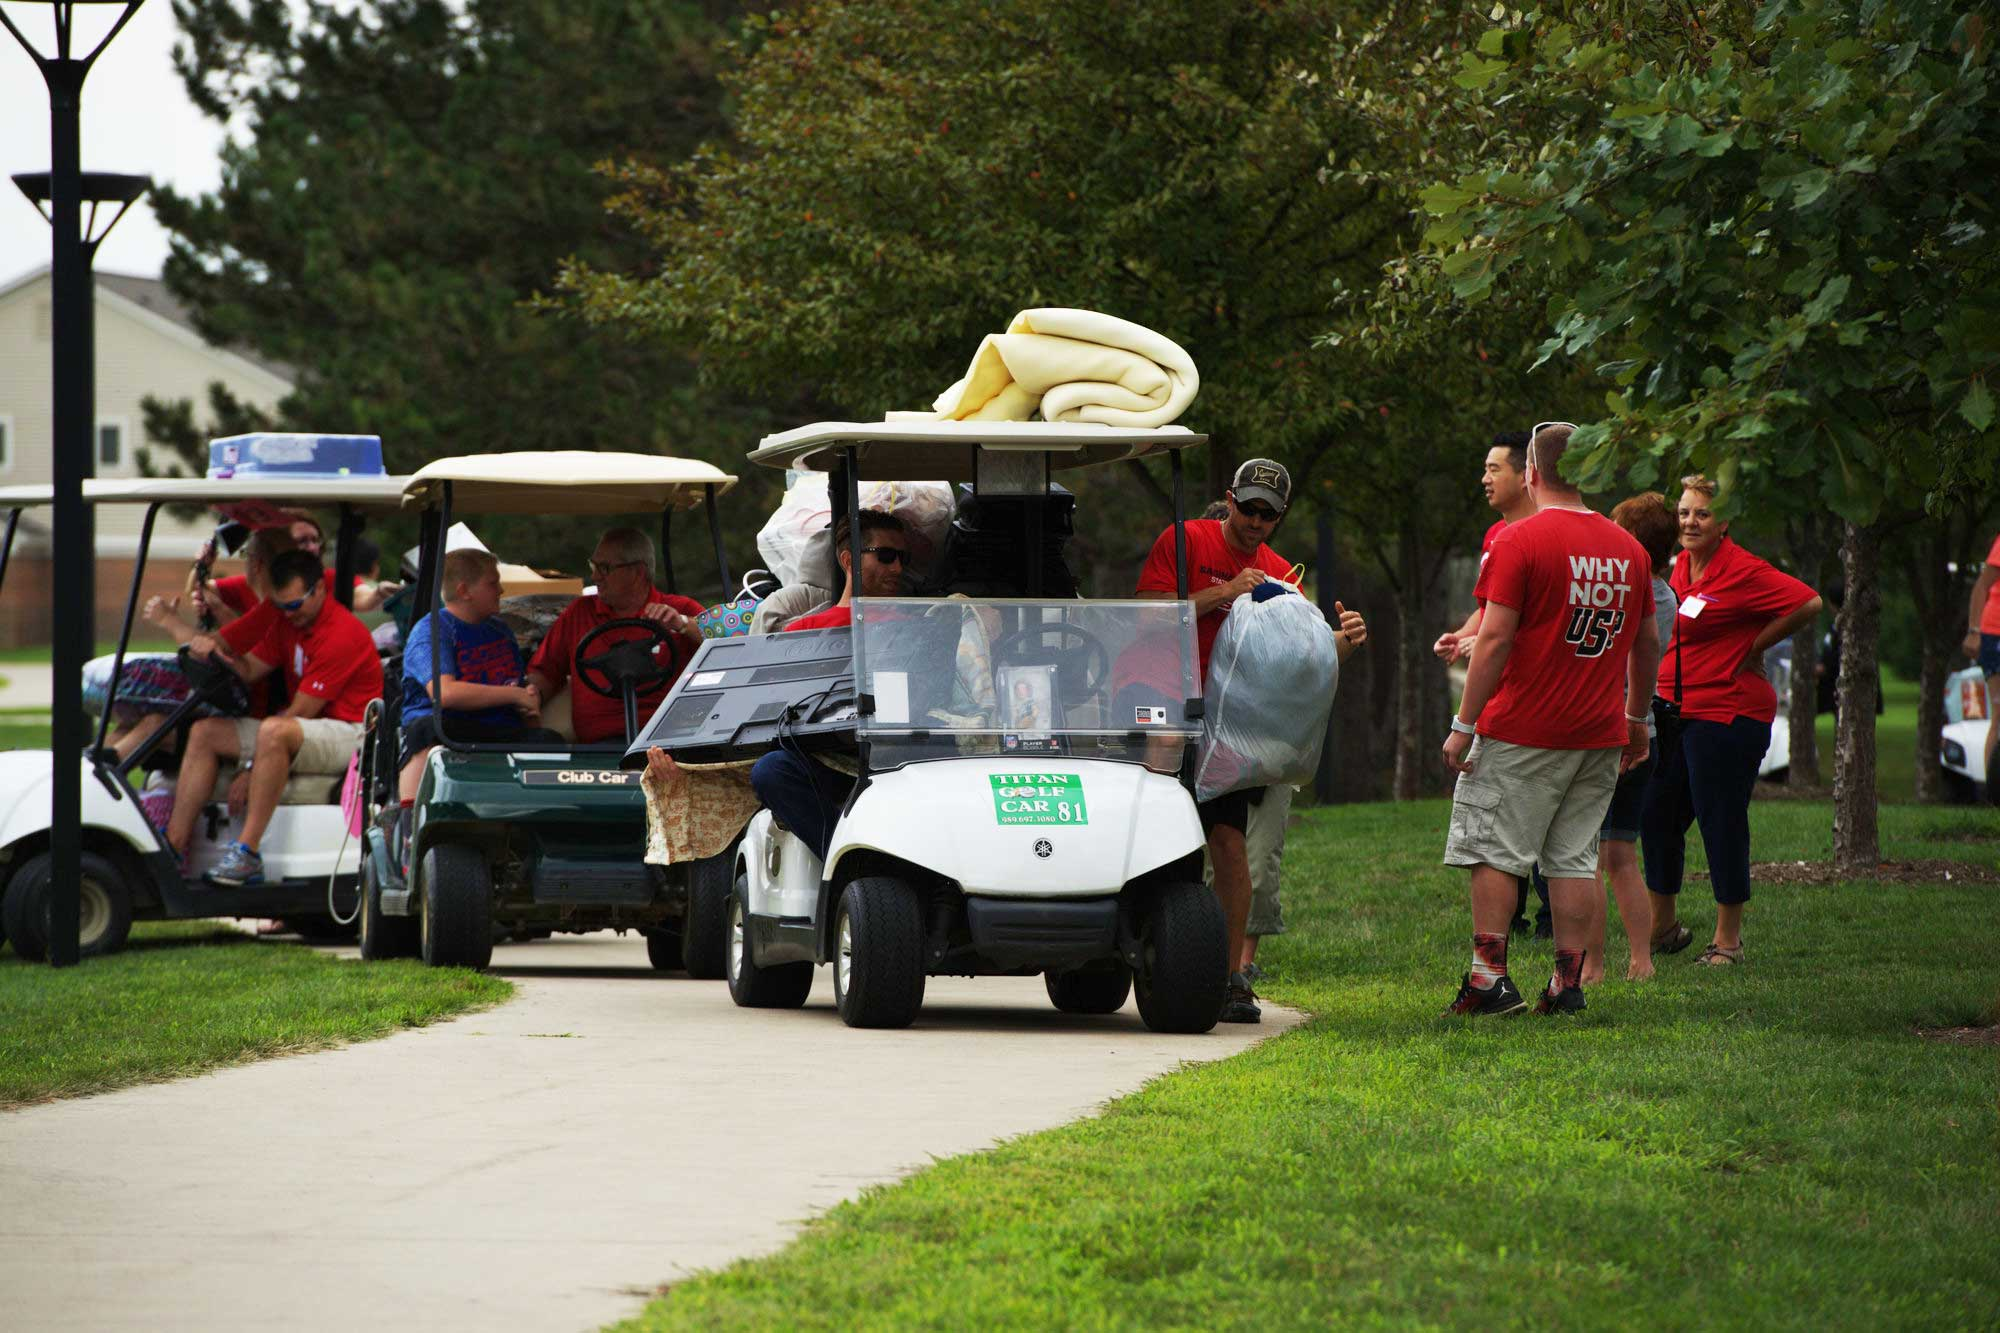 Incoming freshmen move in putting personal belongings on golf carts.